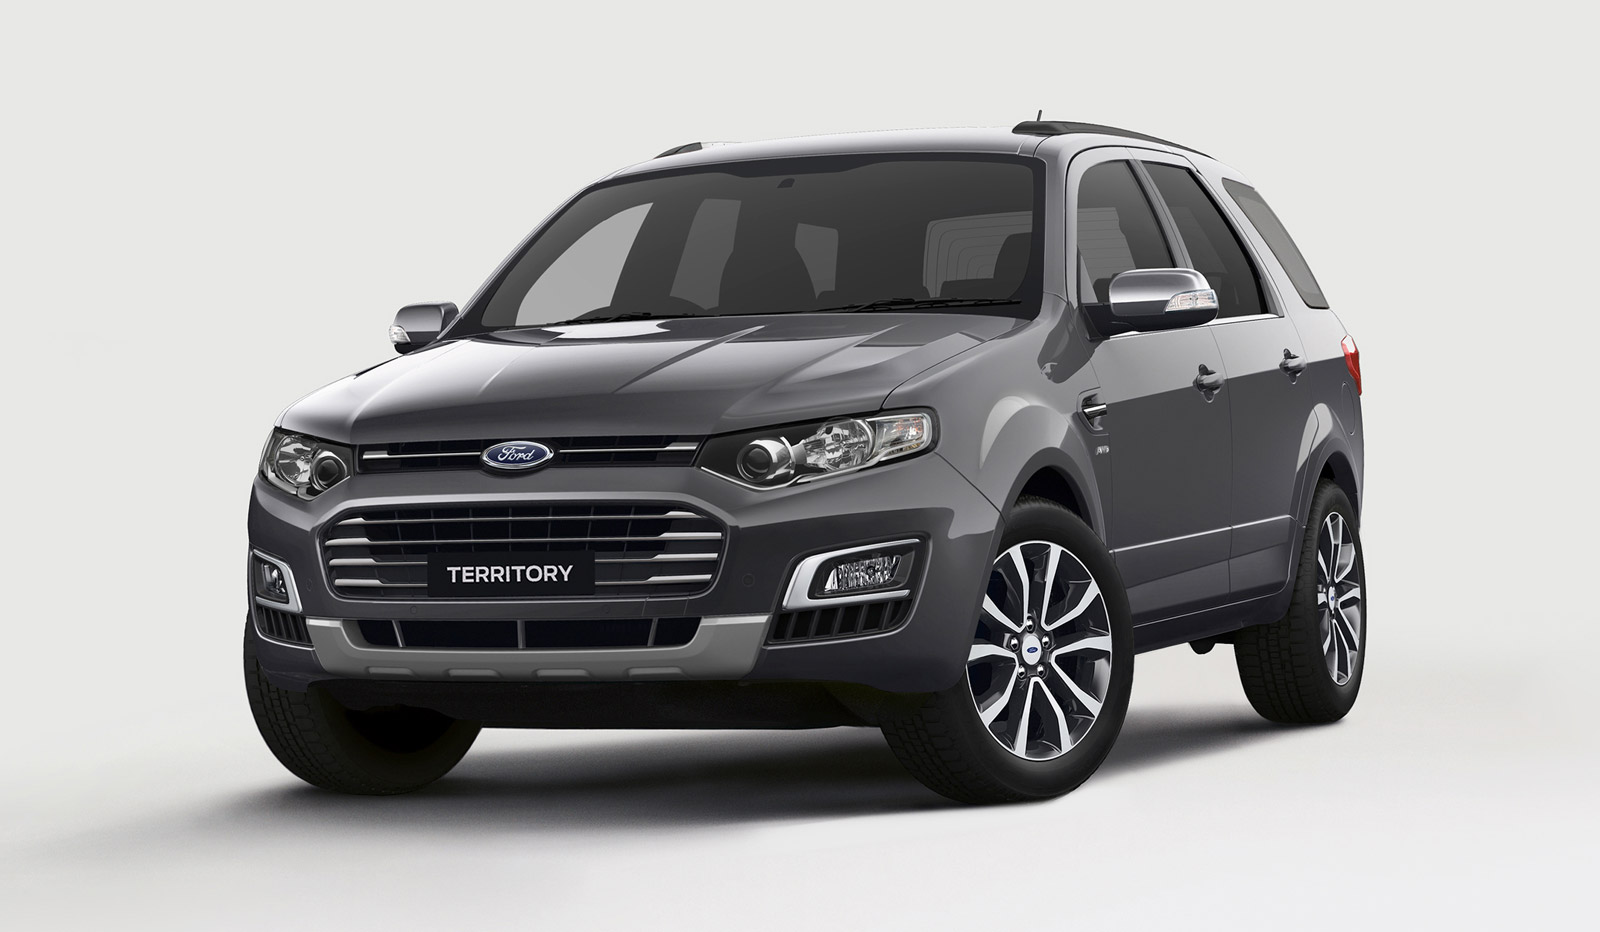 2015 ford territory revealed will be last aussie built suv. Black Bedroom Furniture Sets. Home Design Ideas